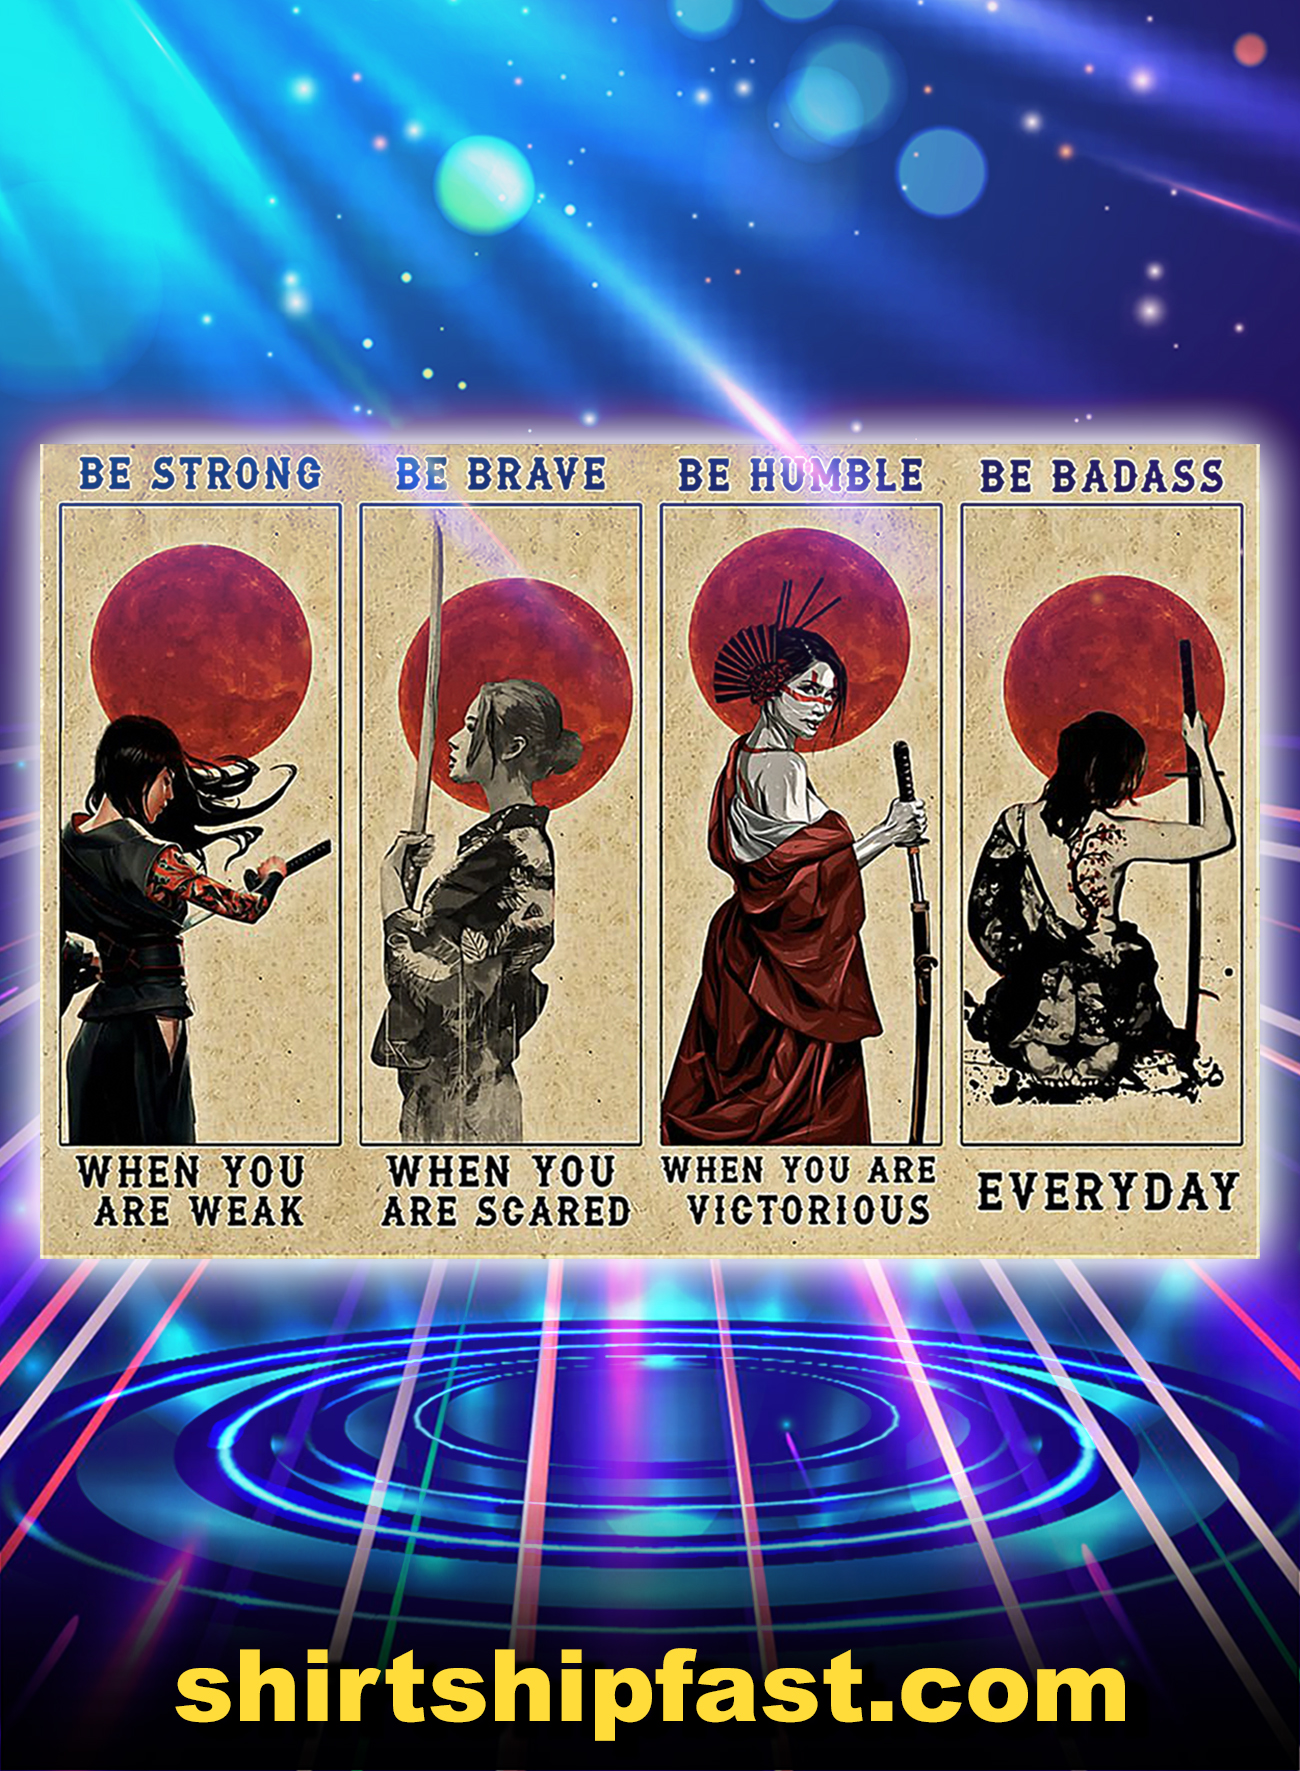 Samurai girl be strong be brave be humble be badass poster - A1